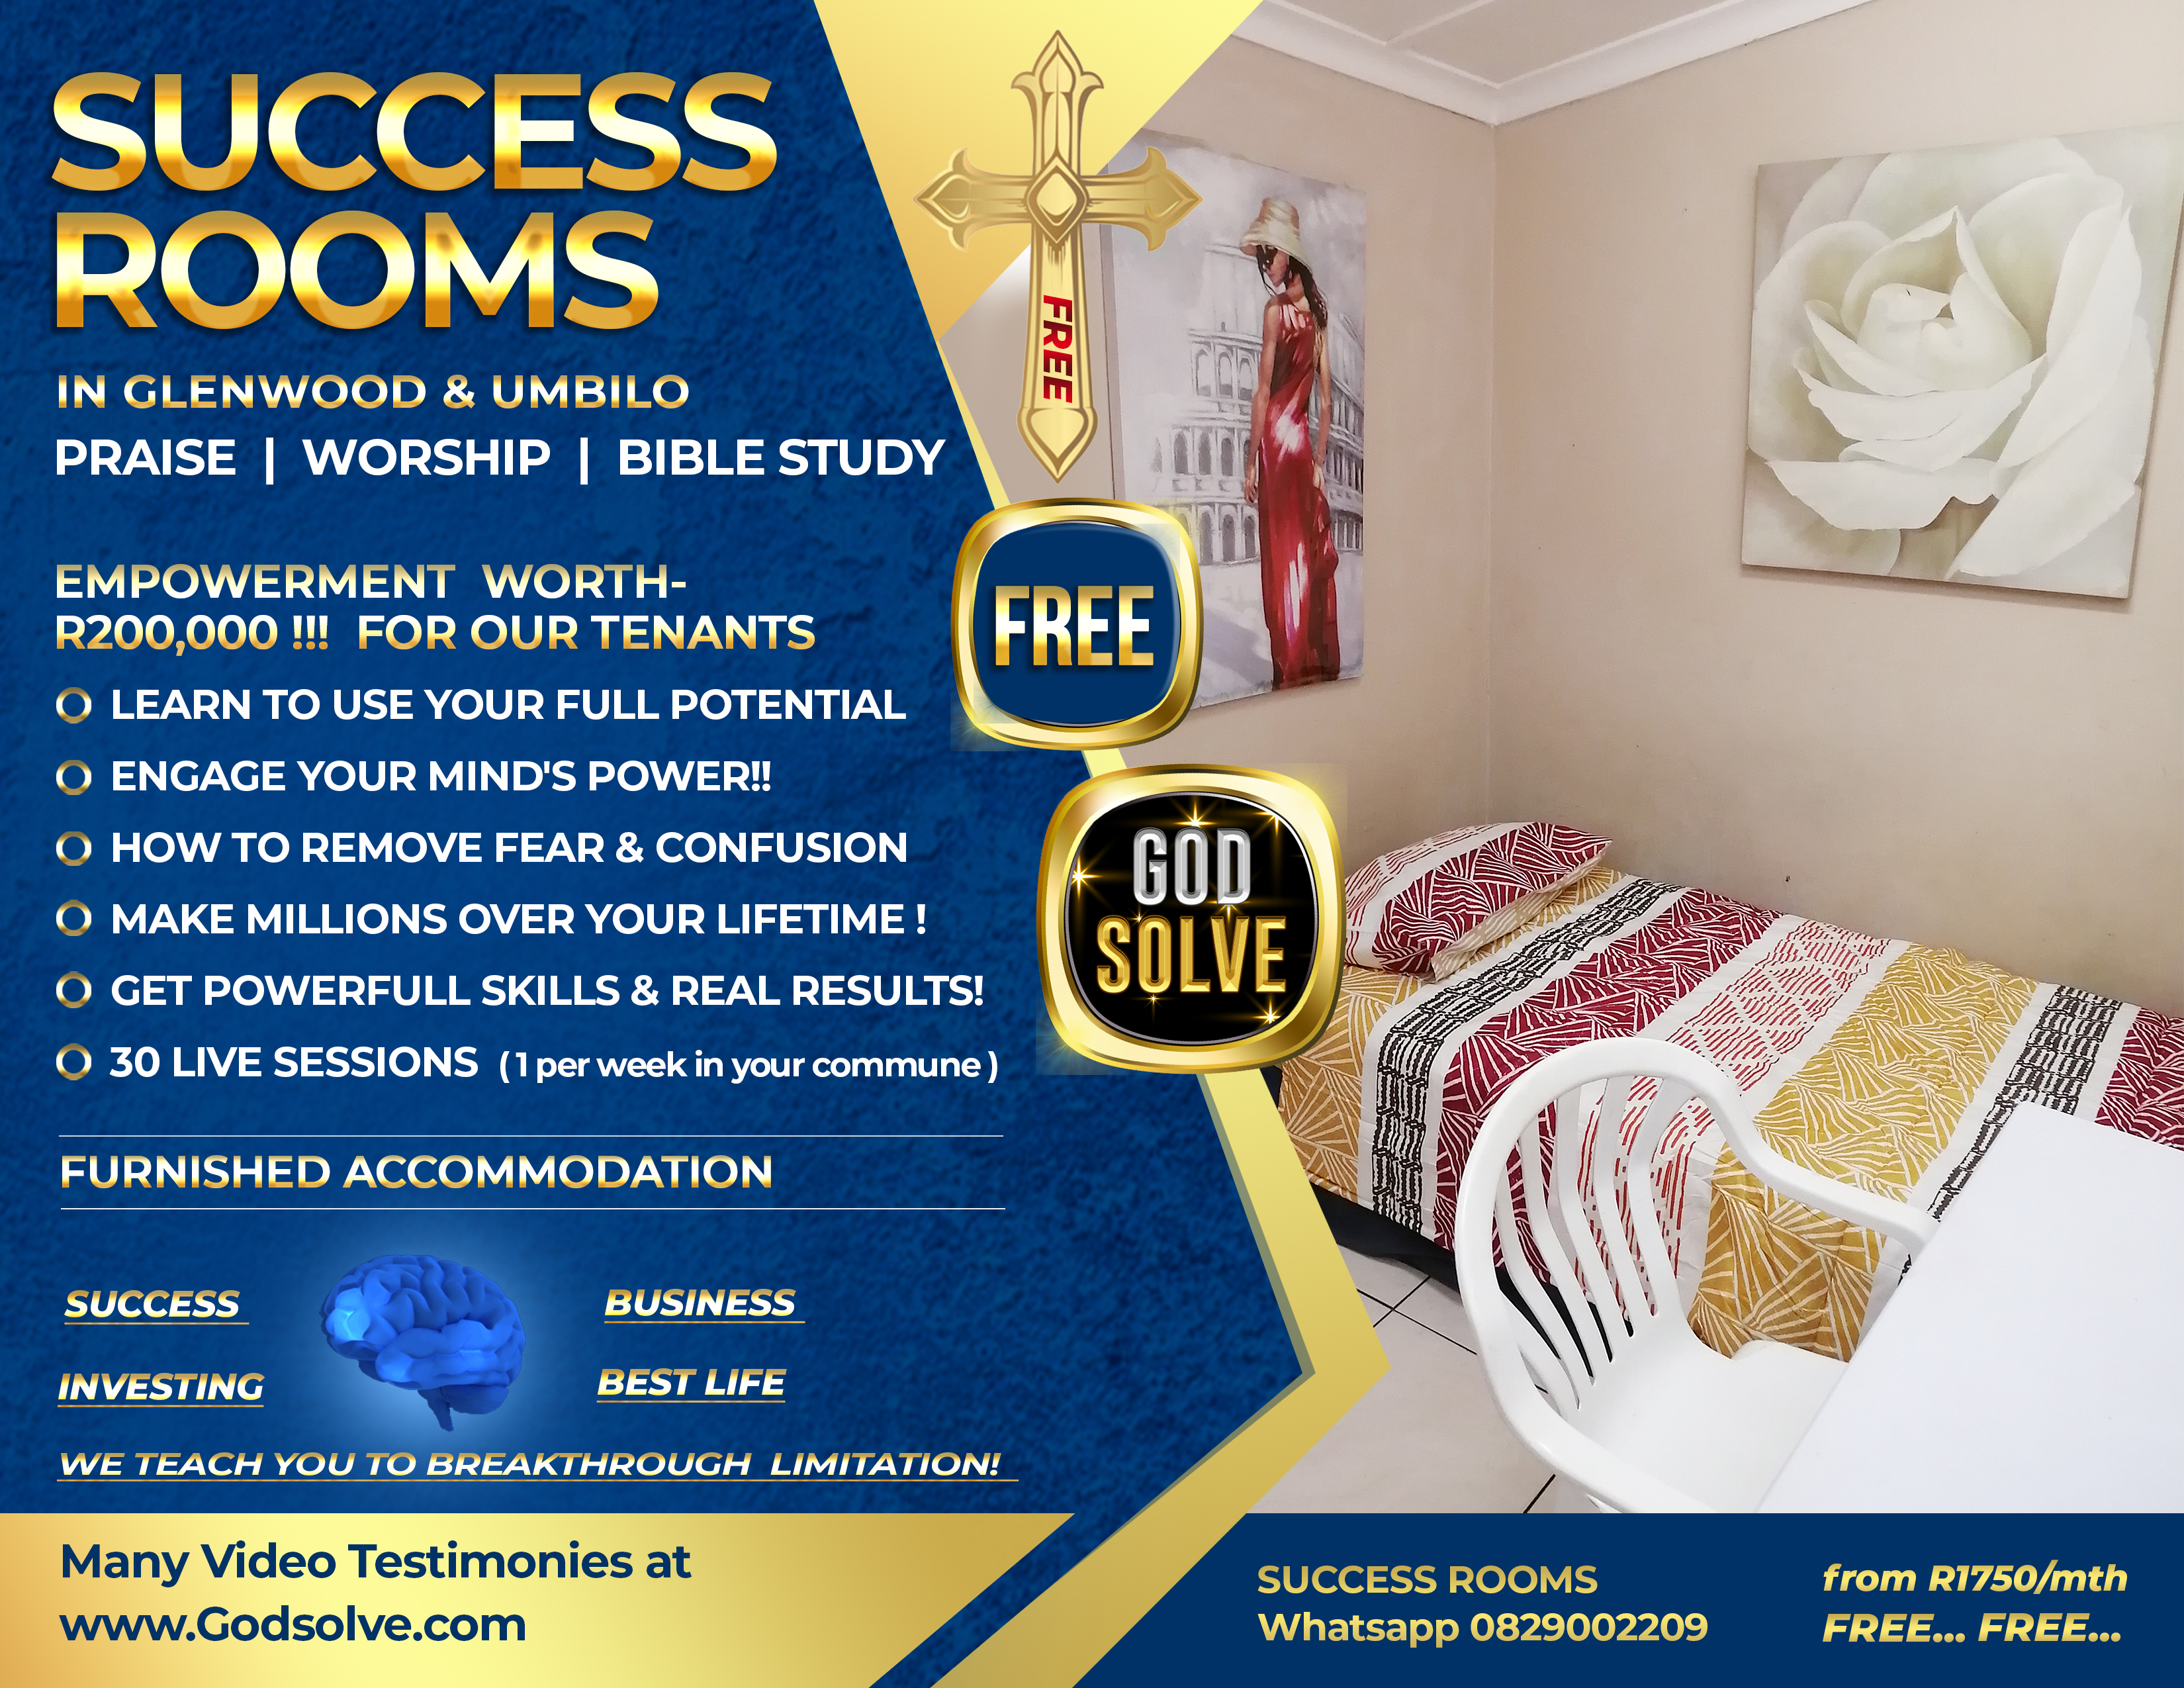 Shared Accommodation Durban Godsolve Success Rooms in Durban, Richard Daguiar Trading & Success Coach